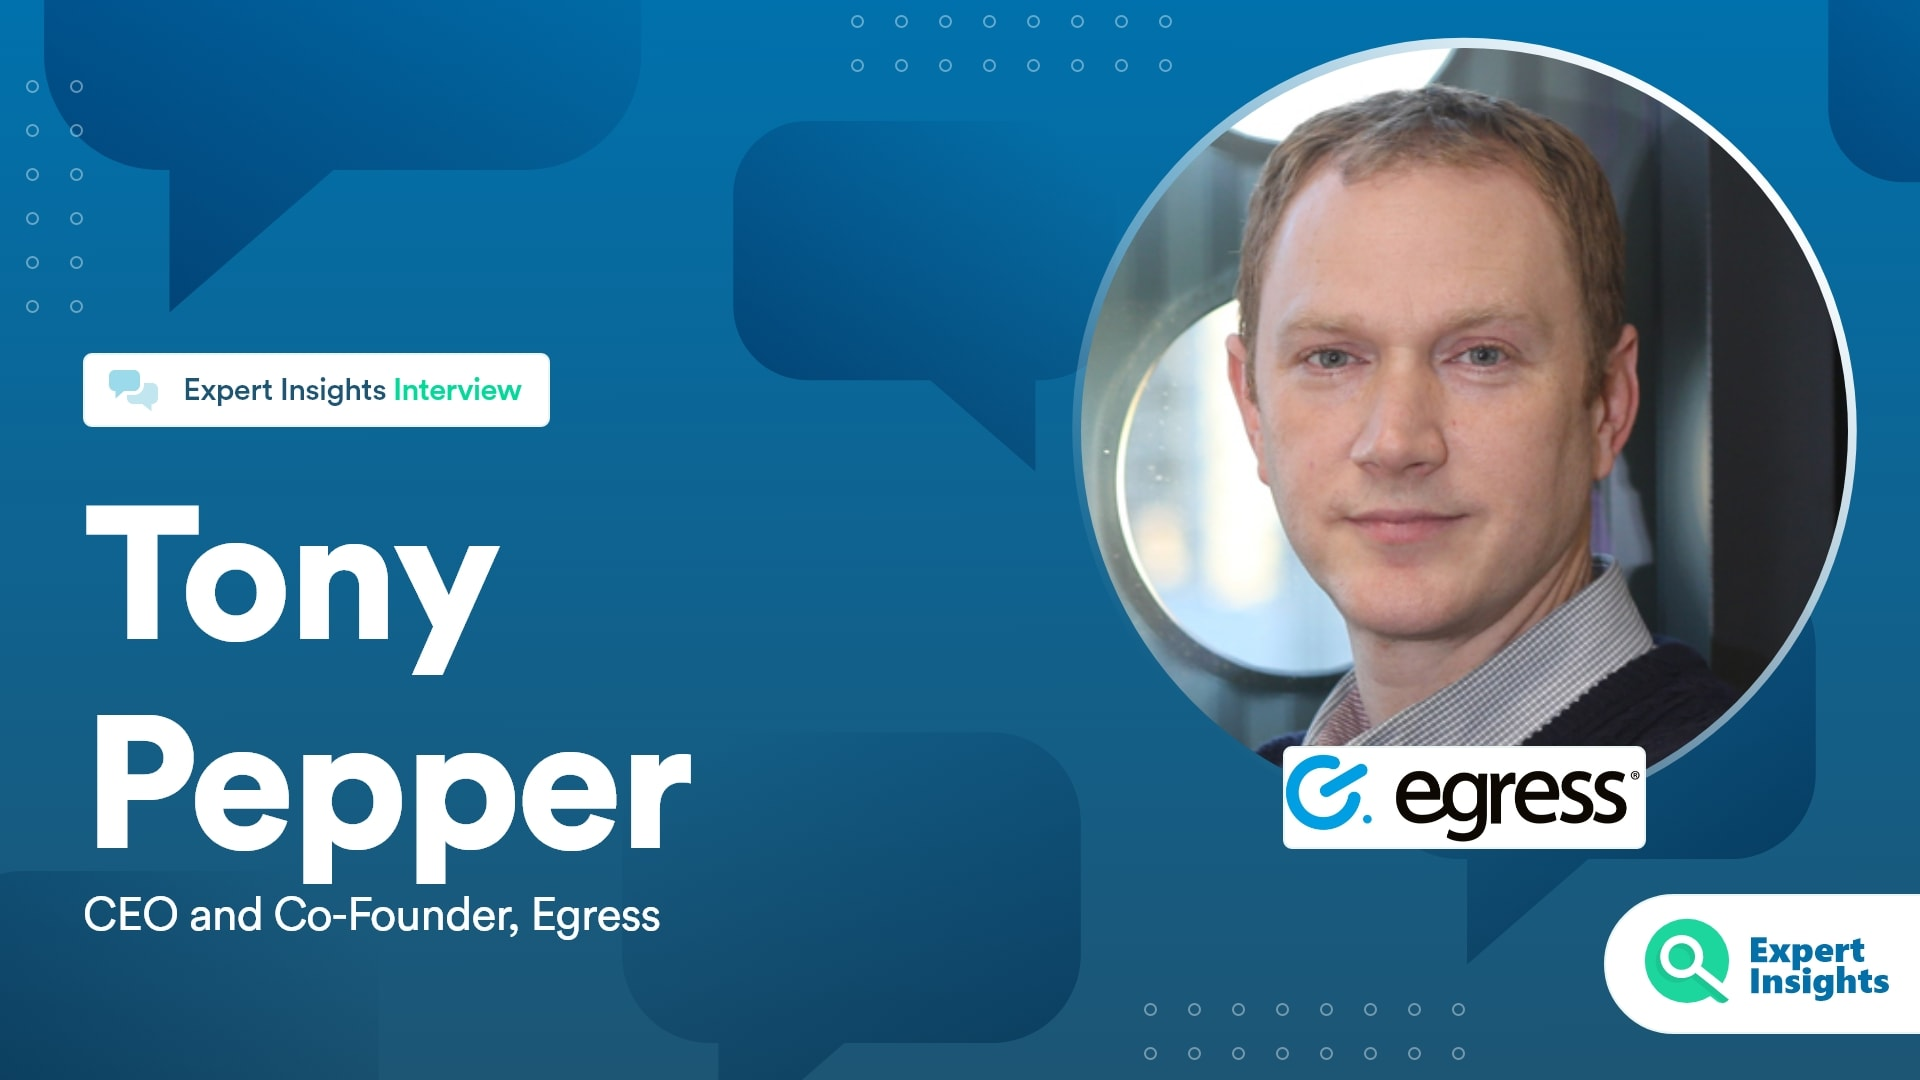 Expert Insights Interview With Tony Pepper Of Egress